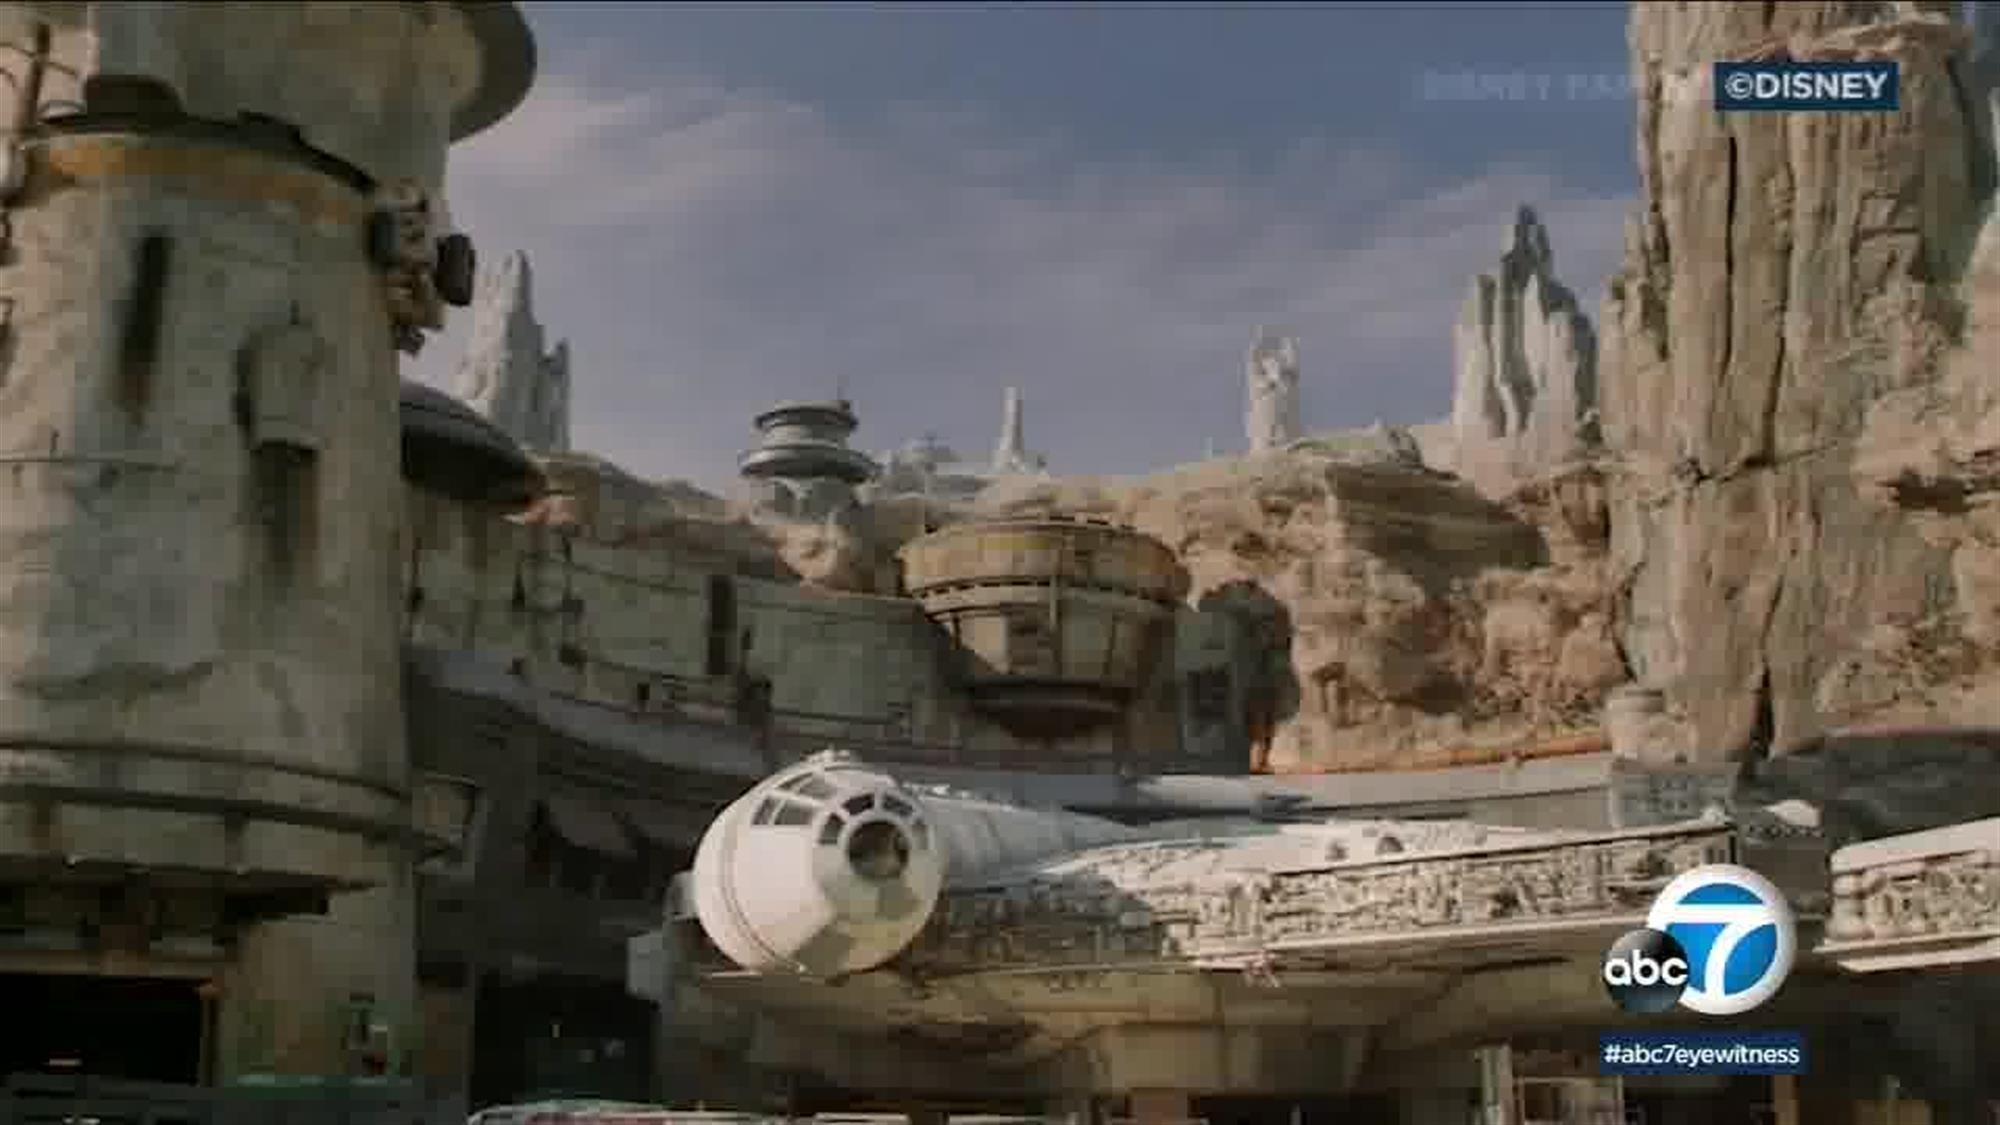 This will be an average guest's view as they approach the Millennium Falcon: Smuggler's Run attraction at Galaxy's Edge. Or if you want to make the same joke that's been made a thousand times already on social media, you could Photoshop in a crowded sea of tourists to make the view more accurate.